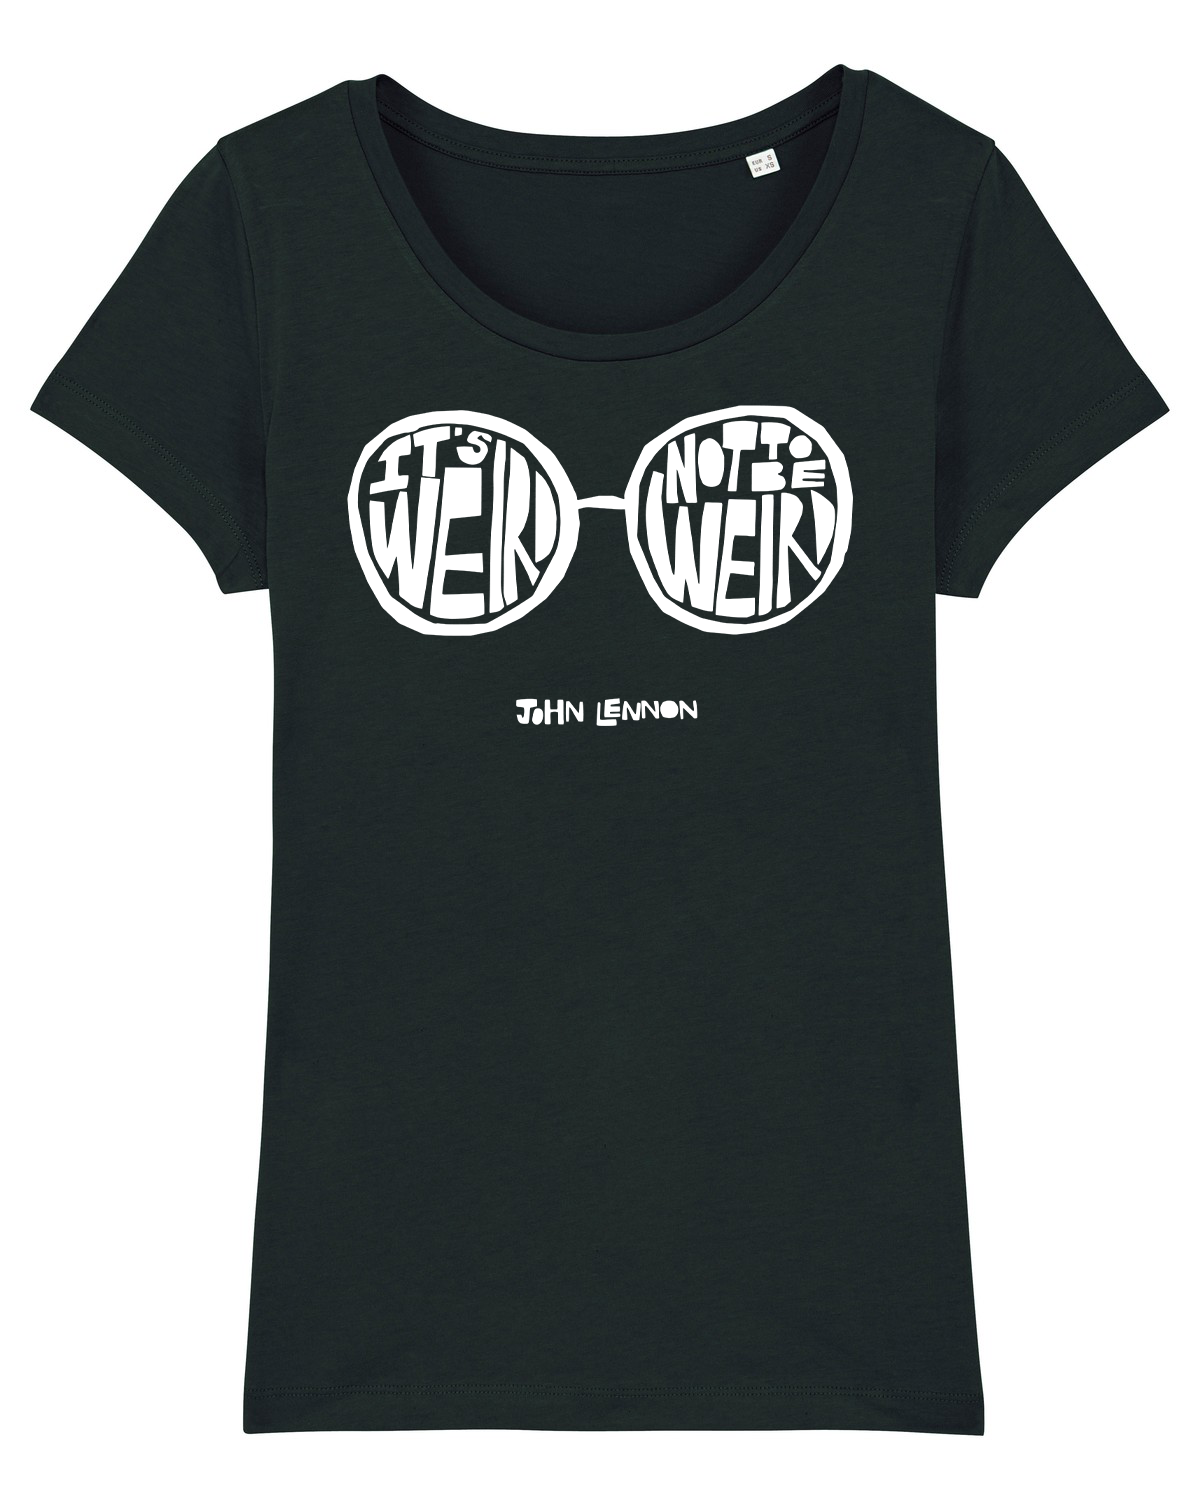 'It's Weird Not To Be Weird' Organic Womens T-shirt